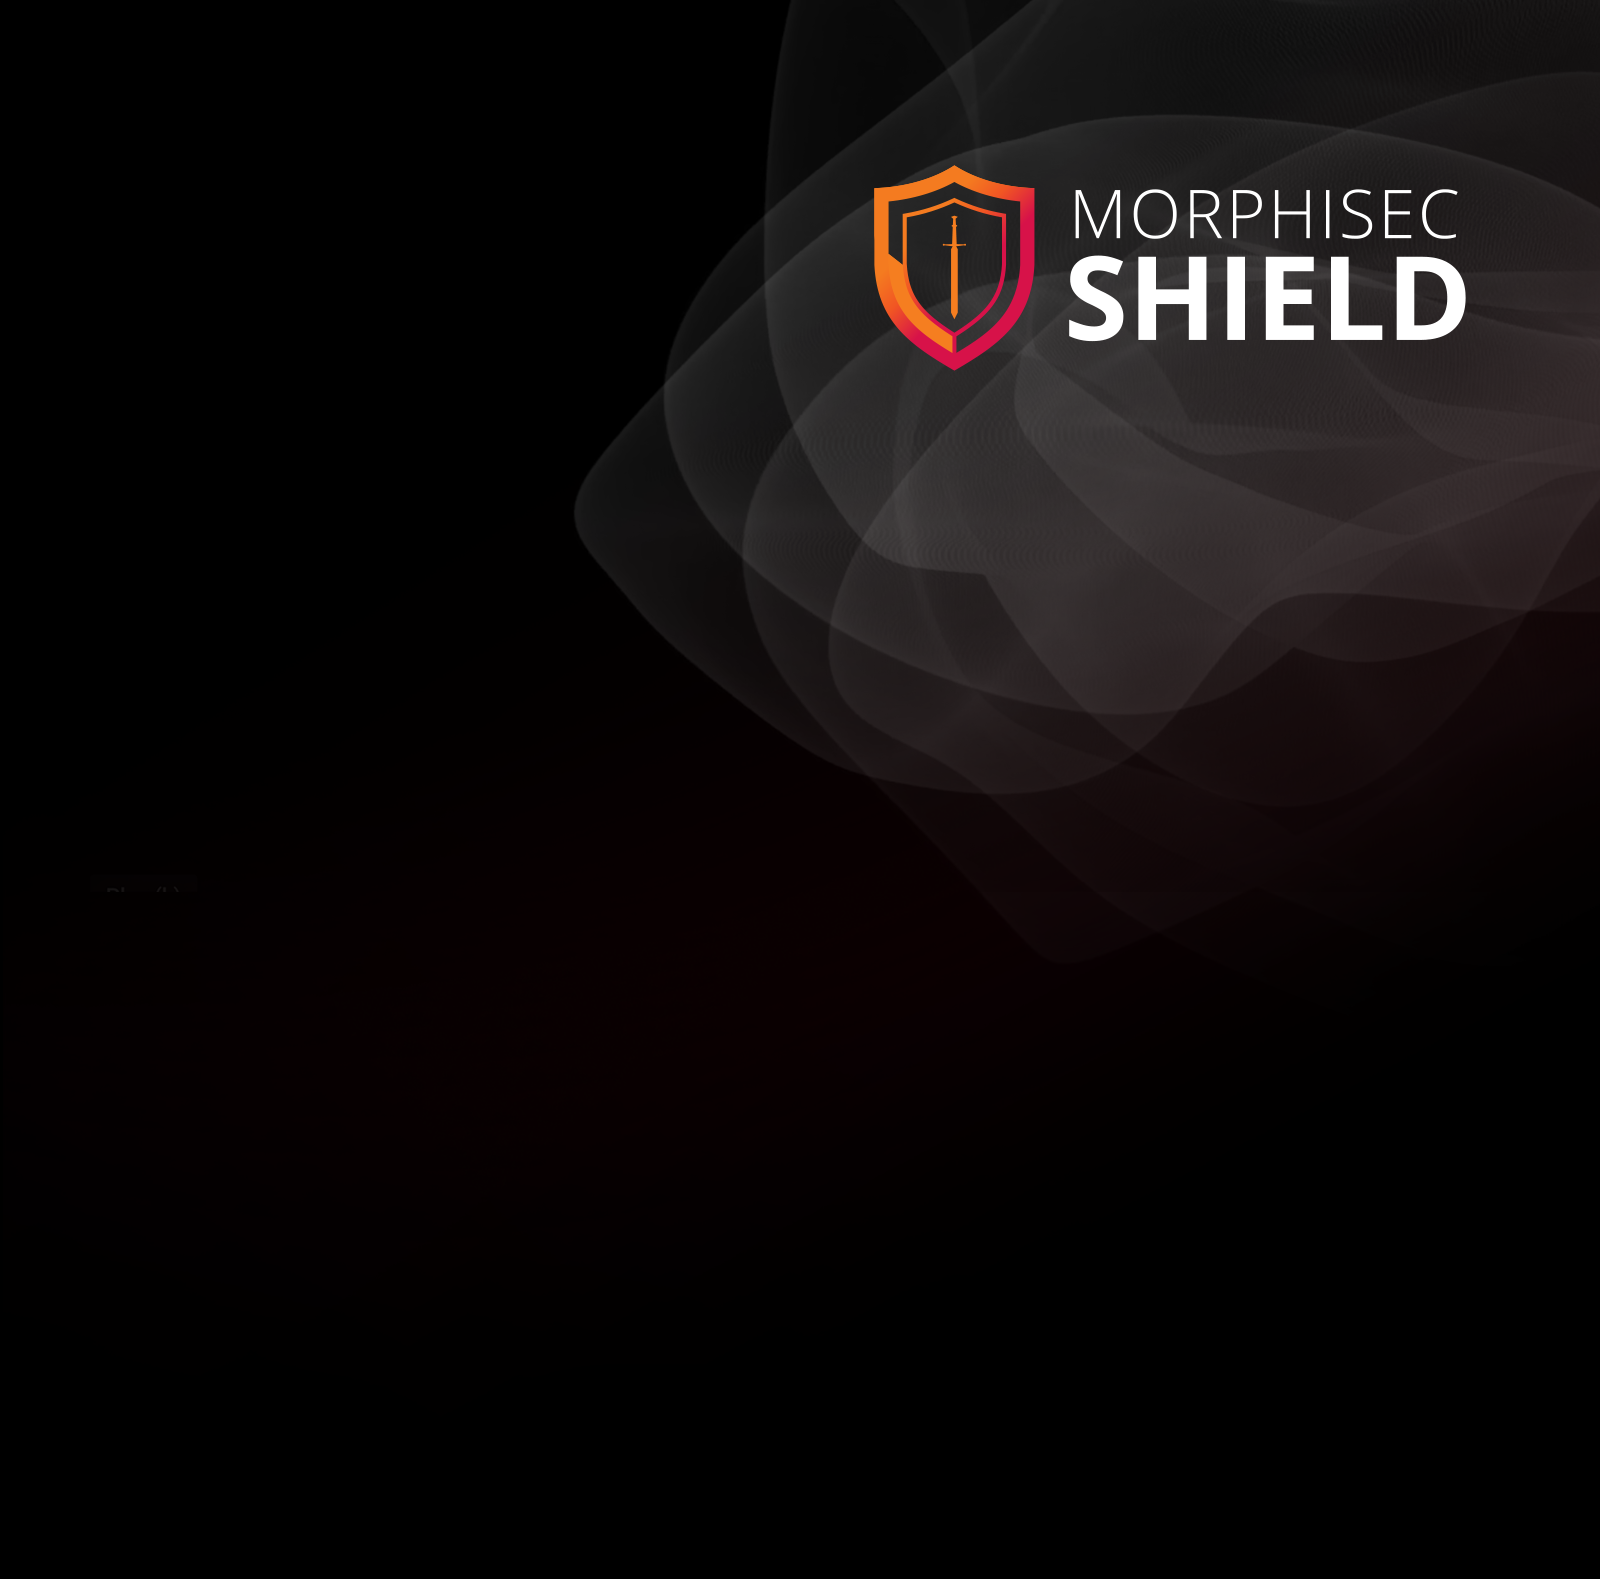 Morphisec Shield BG v1